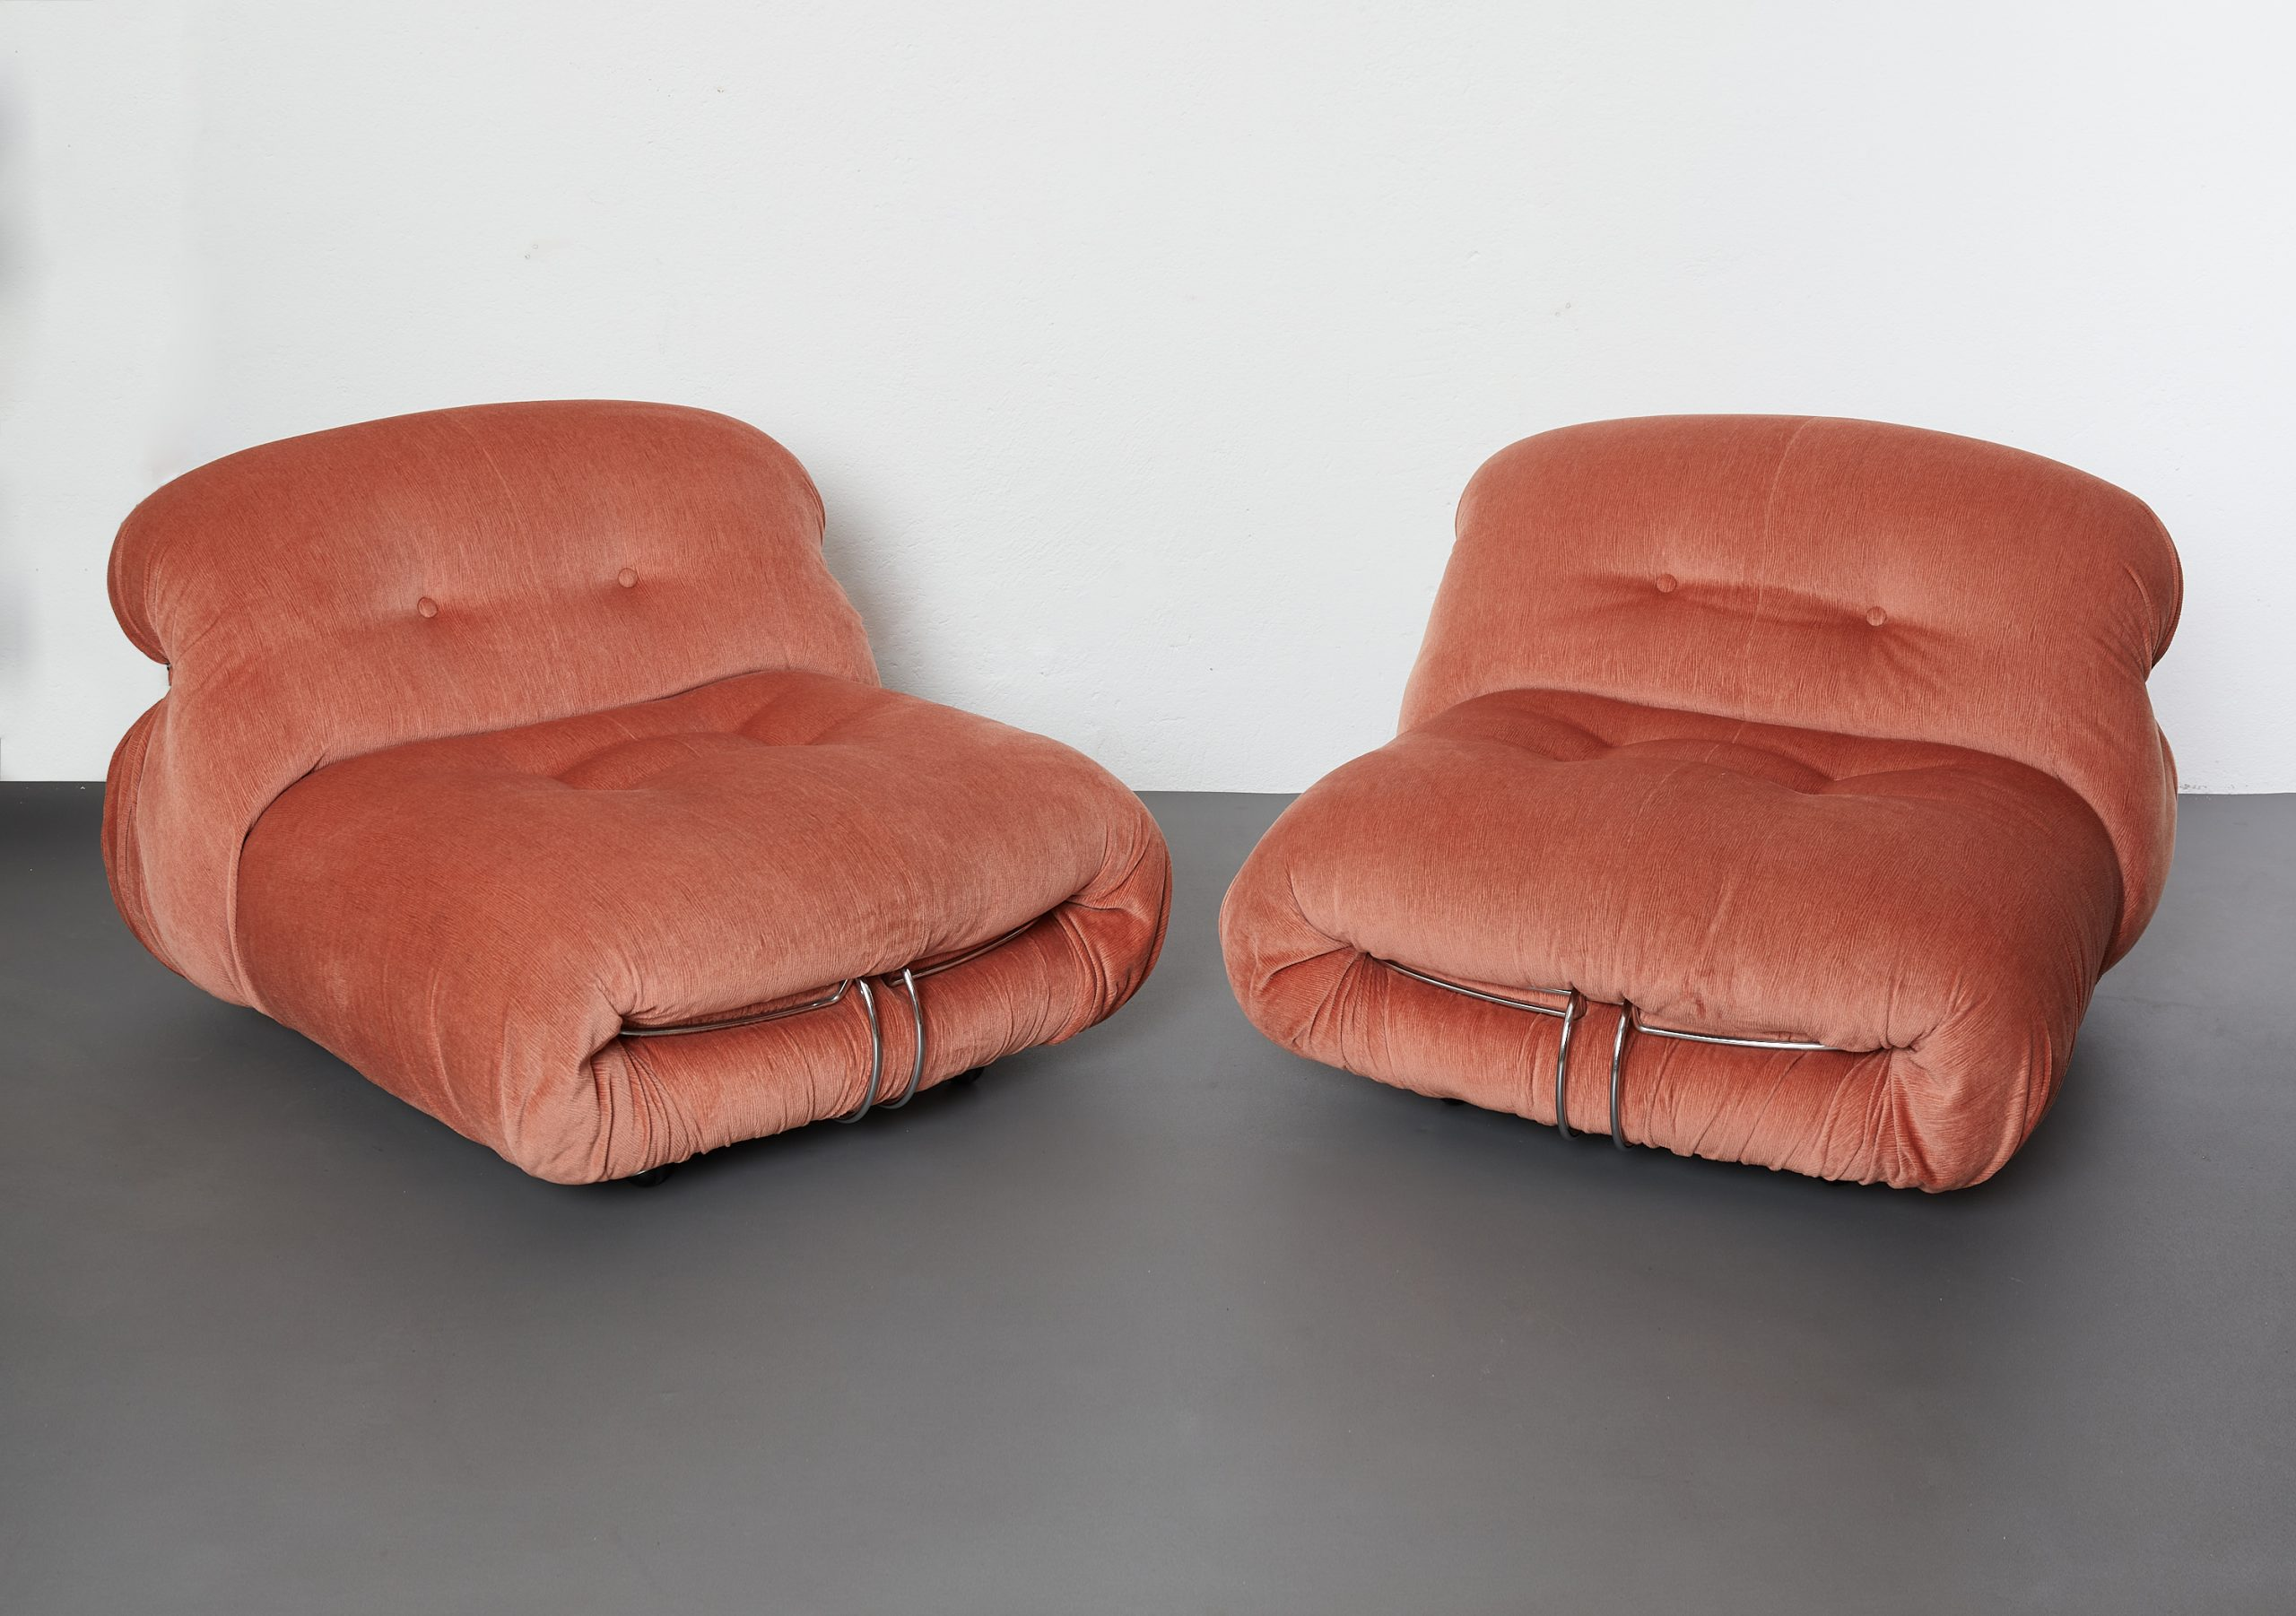 pair-of-soriana-lounge-chairs-by-afra-and-tobia-scarpa-cassina-1970-image-02